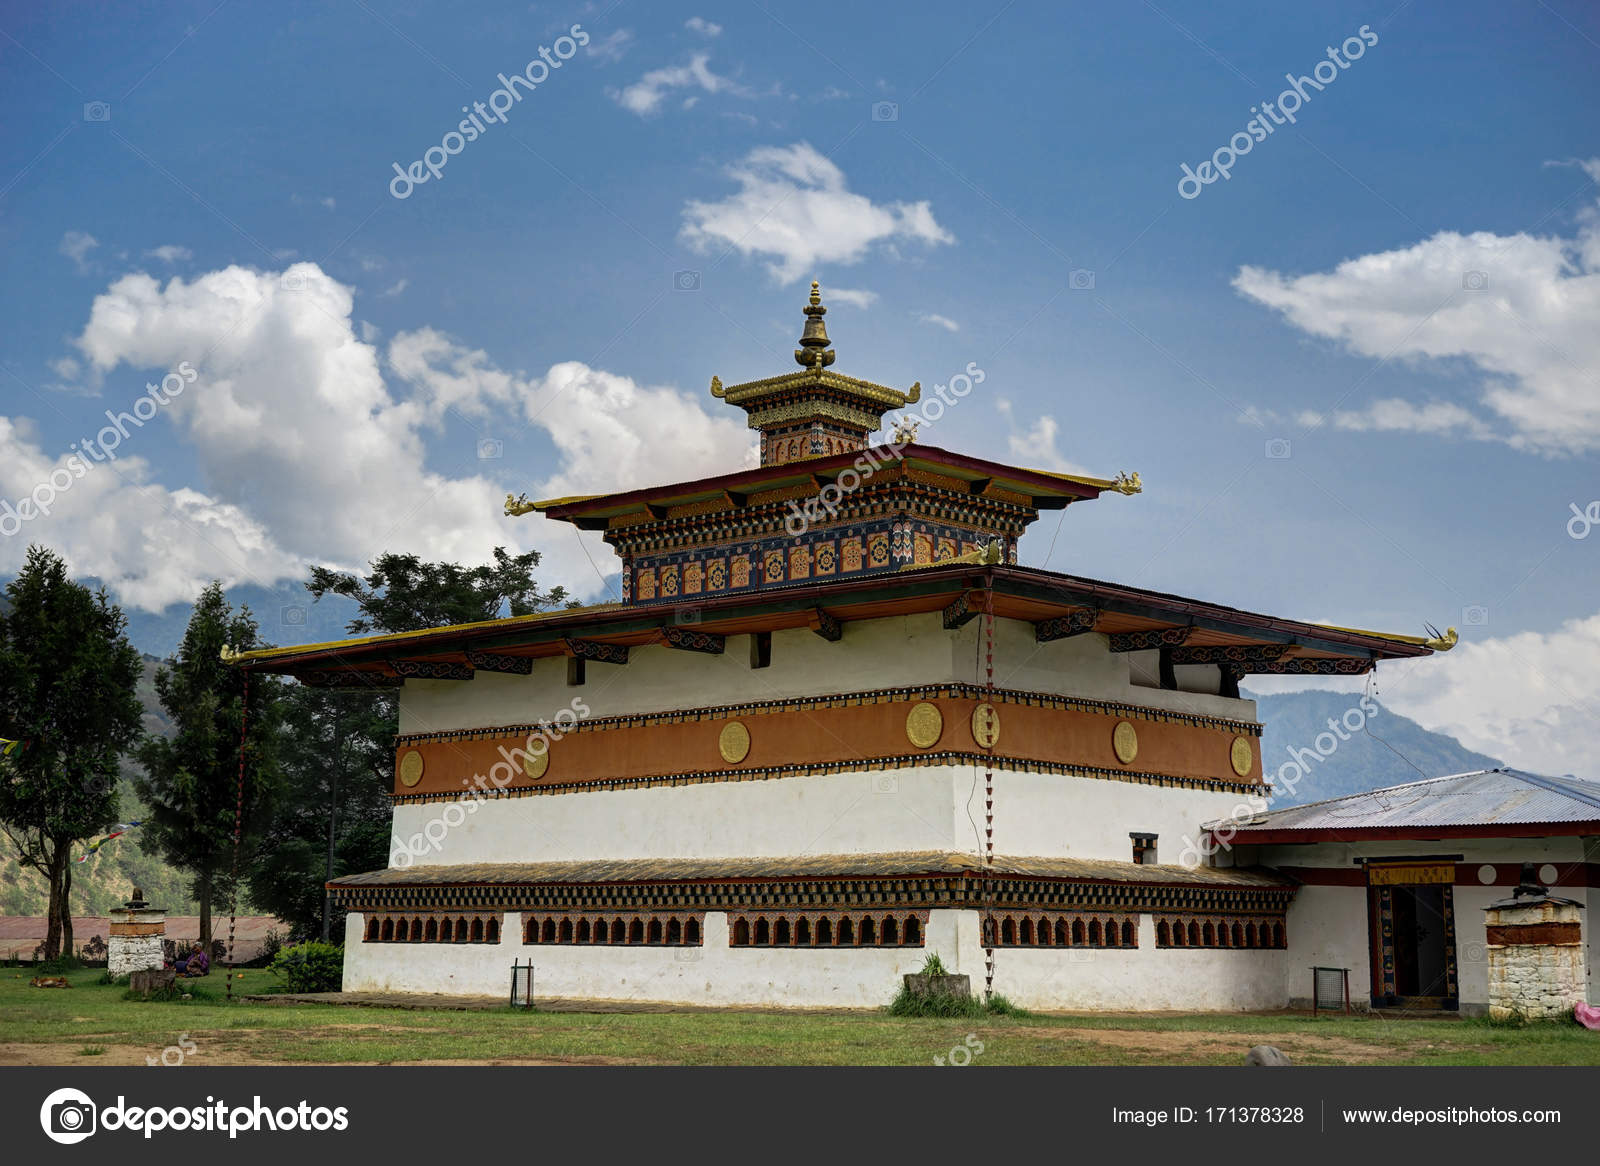 Bhutan Building Religion — Stock Photo © mathias_berlin